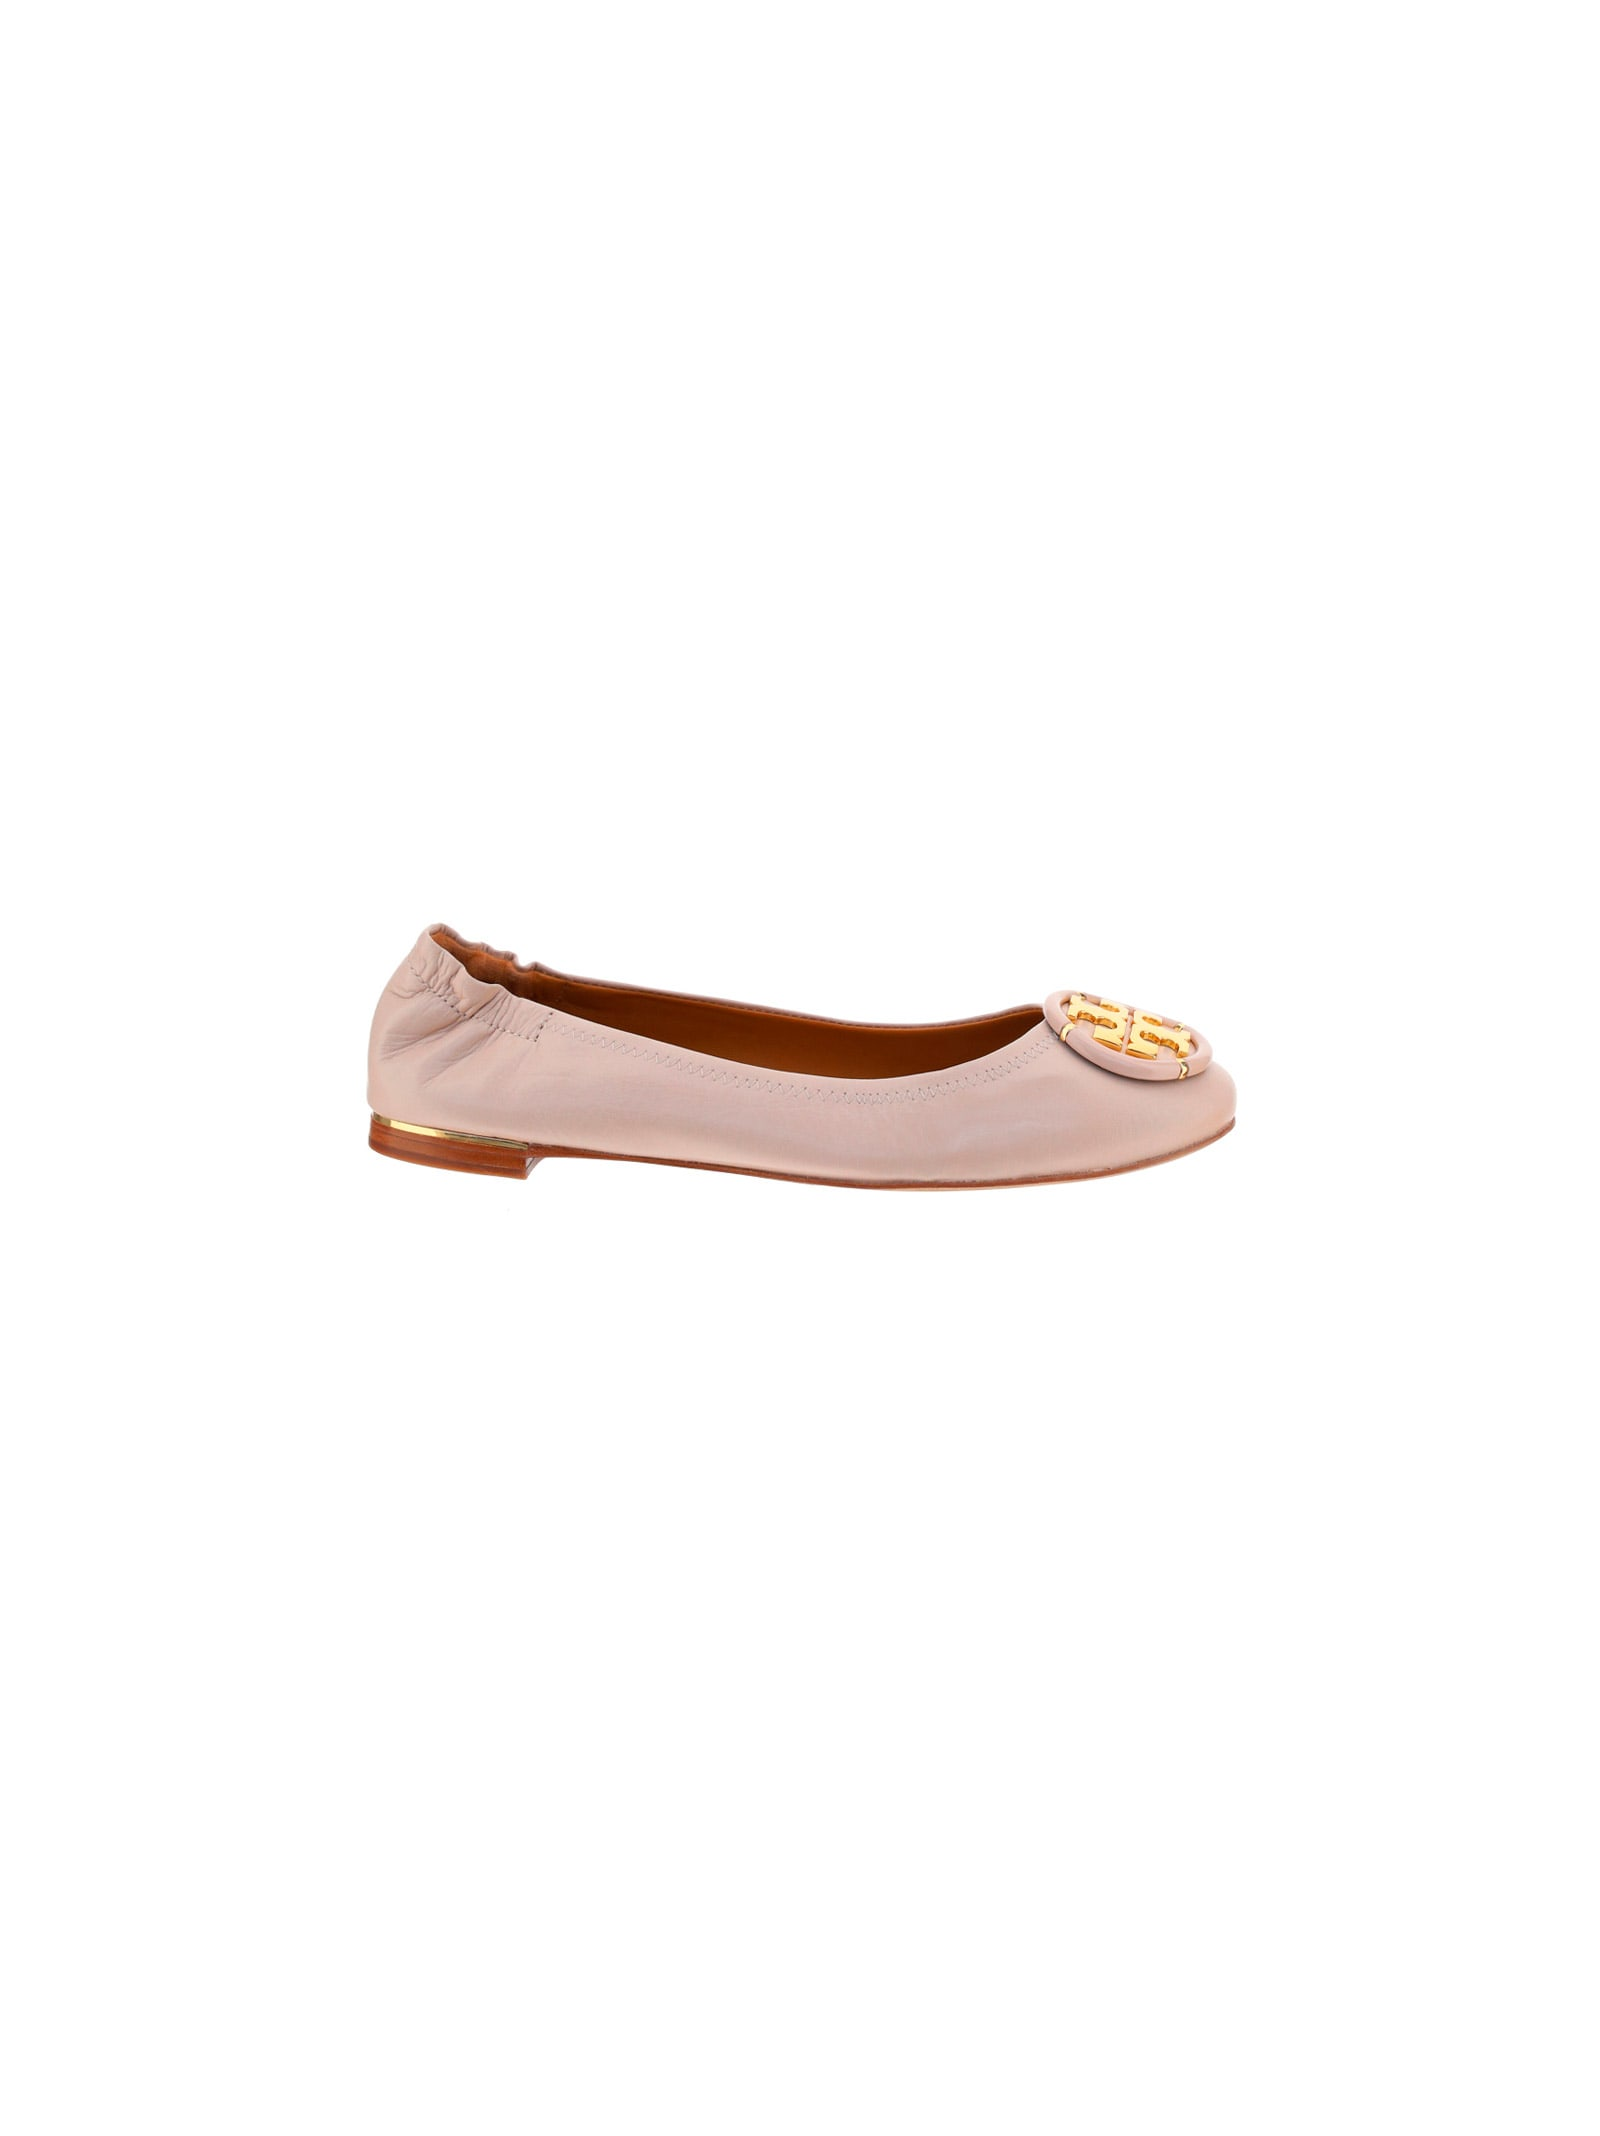 Buy Tory Burch Ballerinas online, shop Tory Burch shoes with free shipping